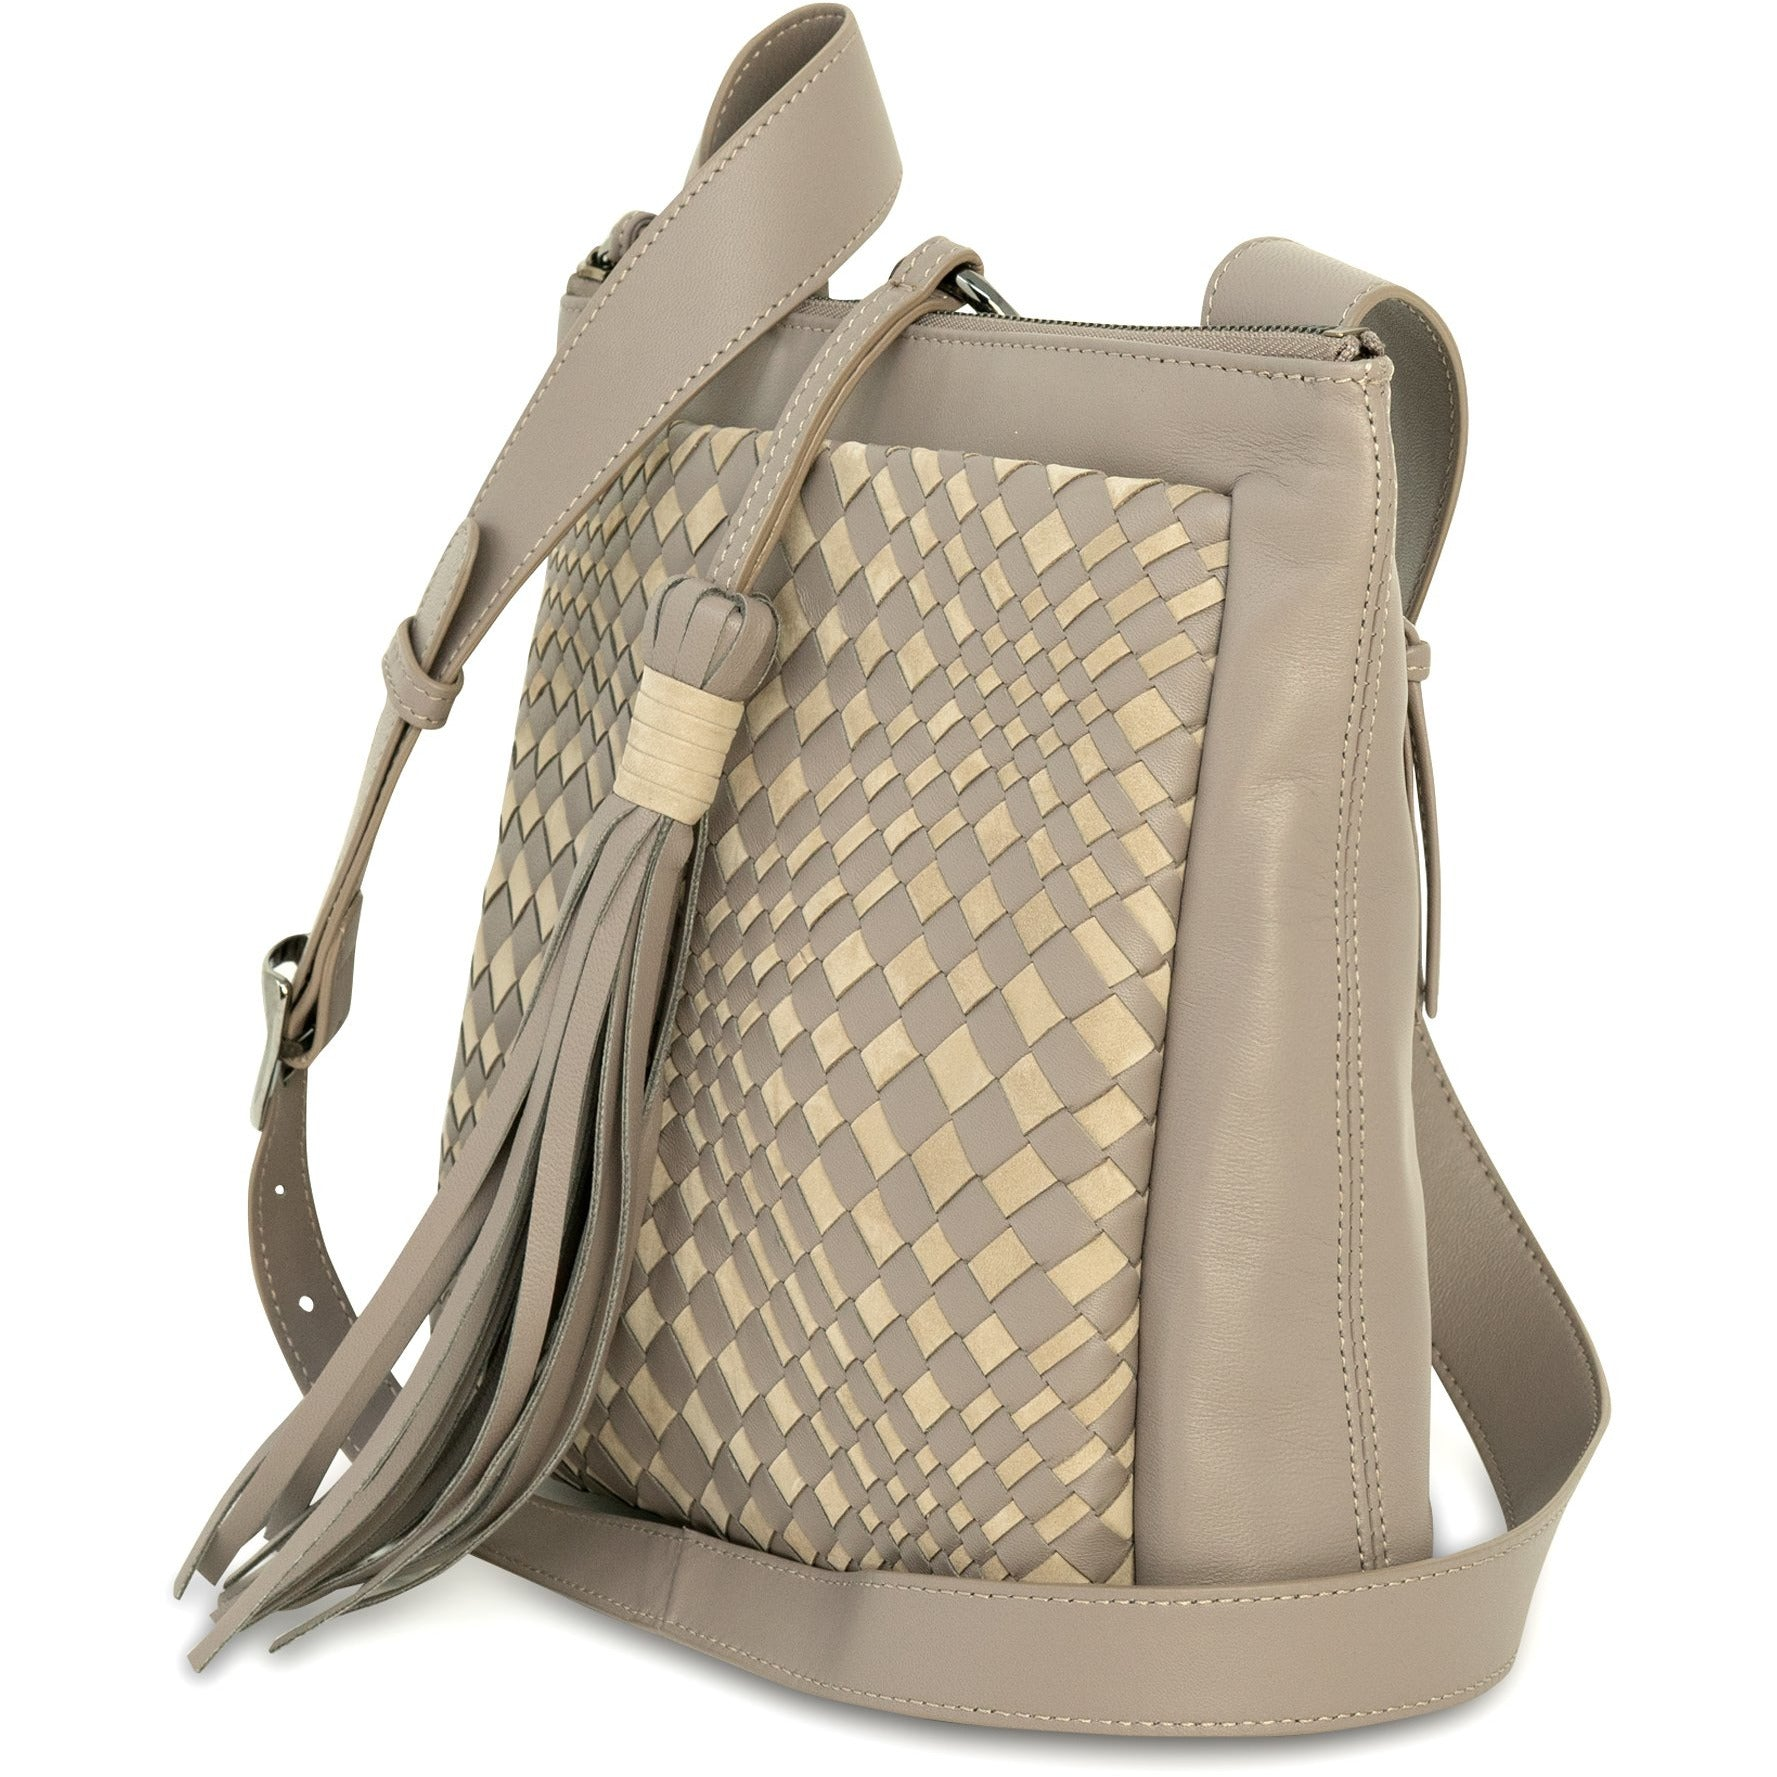 GINGER IS Crossbody Bag Intrecciato Optical Nappa Taupe - Jennifer Tattanelli